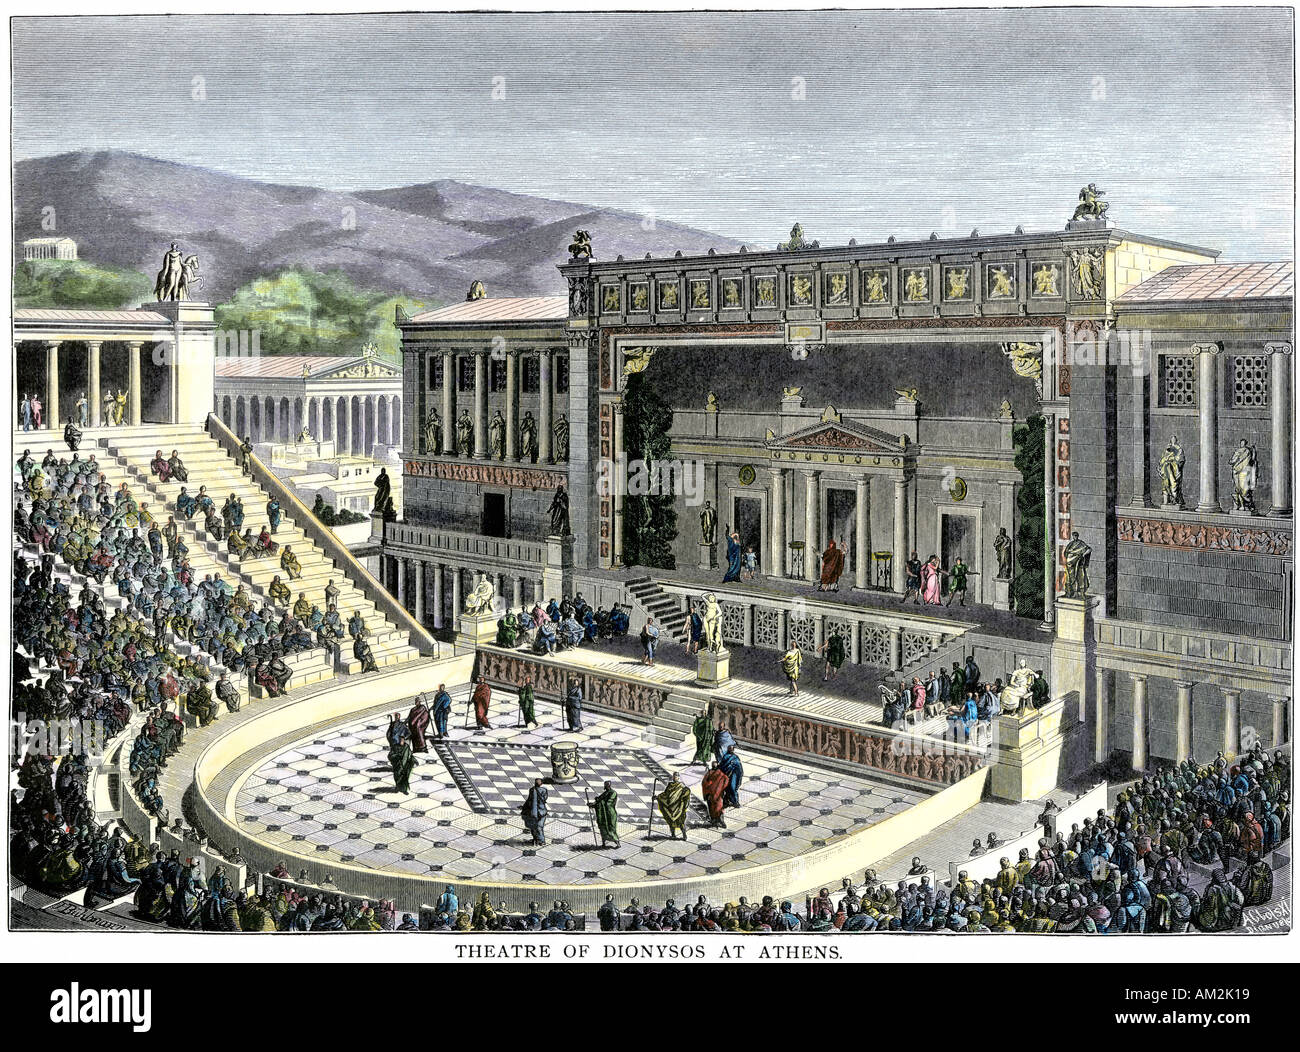 Performance at the Theatre of Dionysus in Athens ancient Greece. Hand-colored woodcut - Stock Image